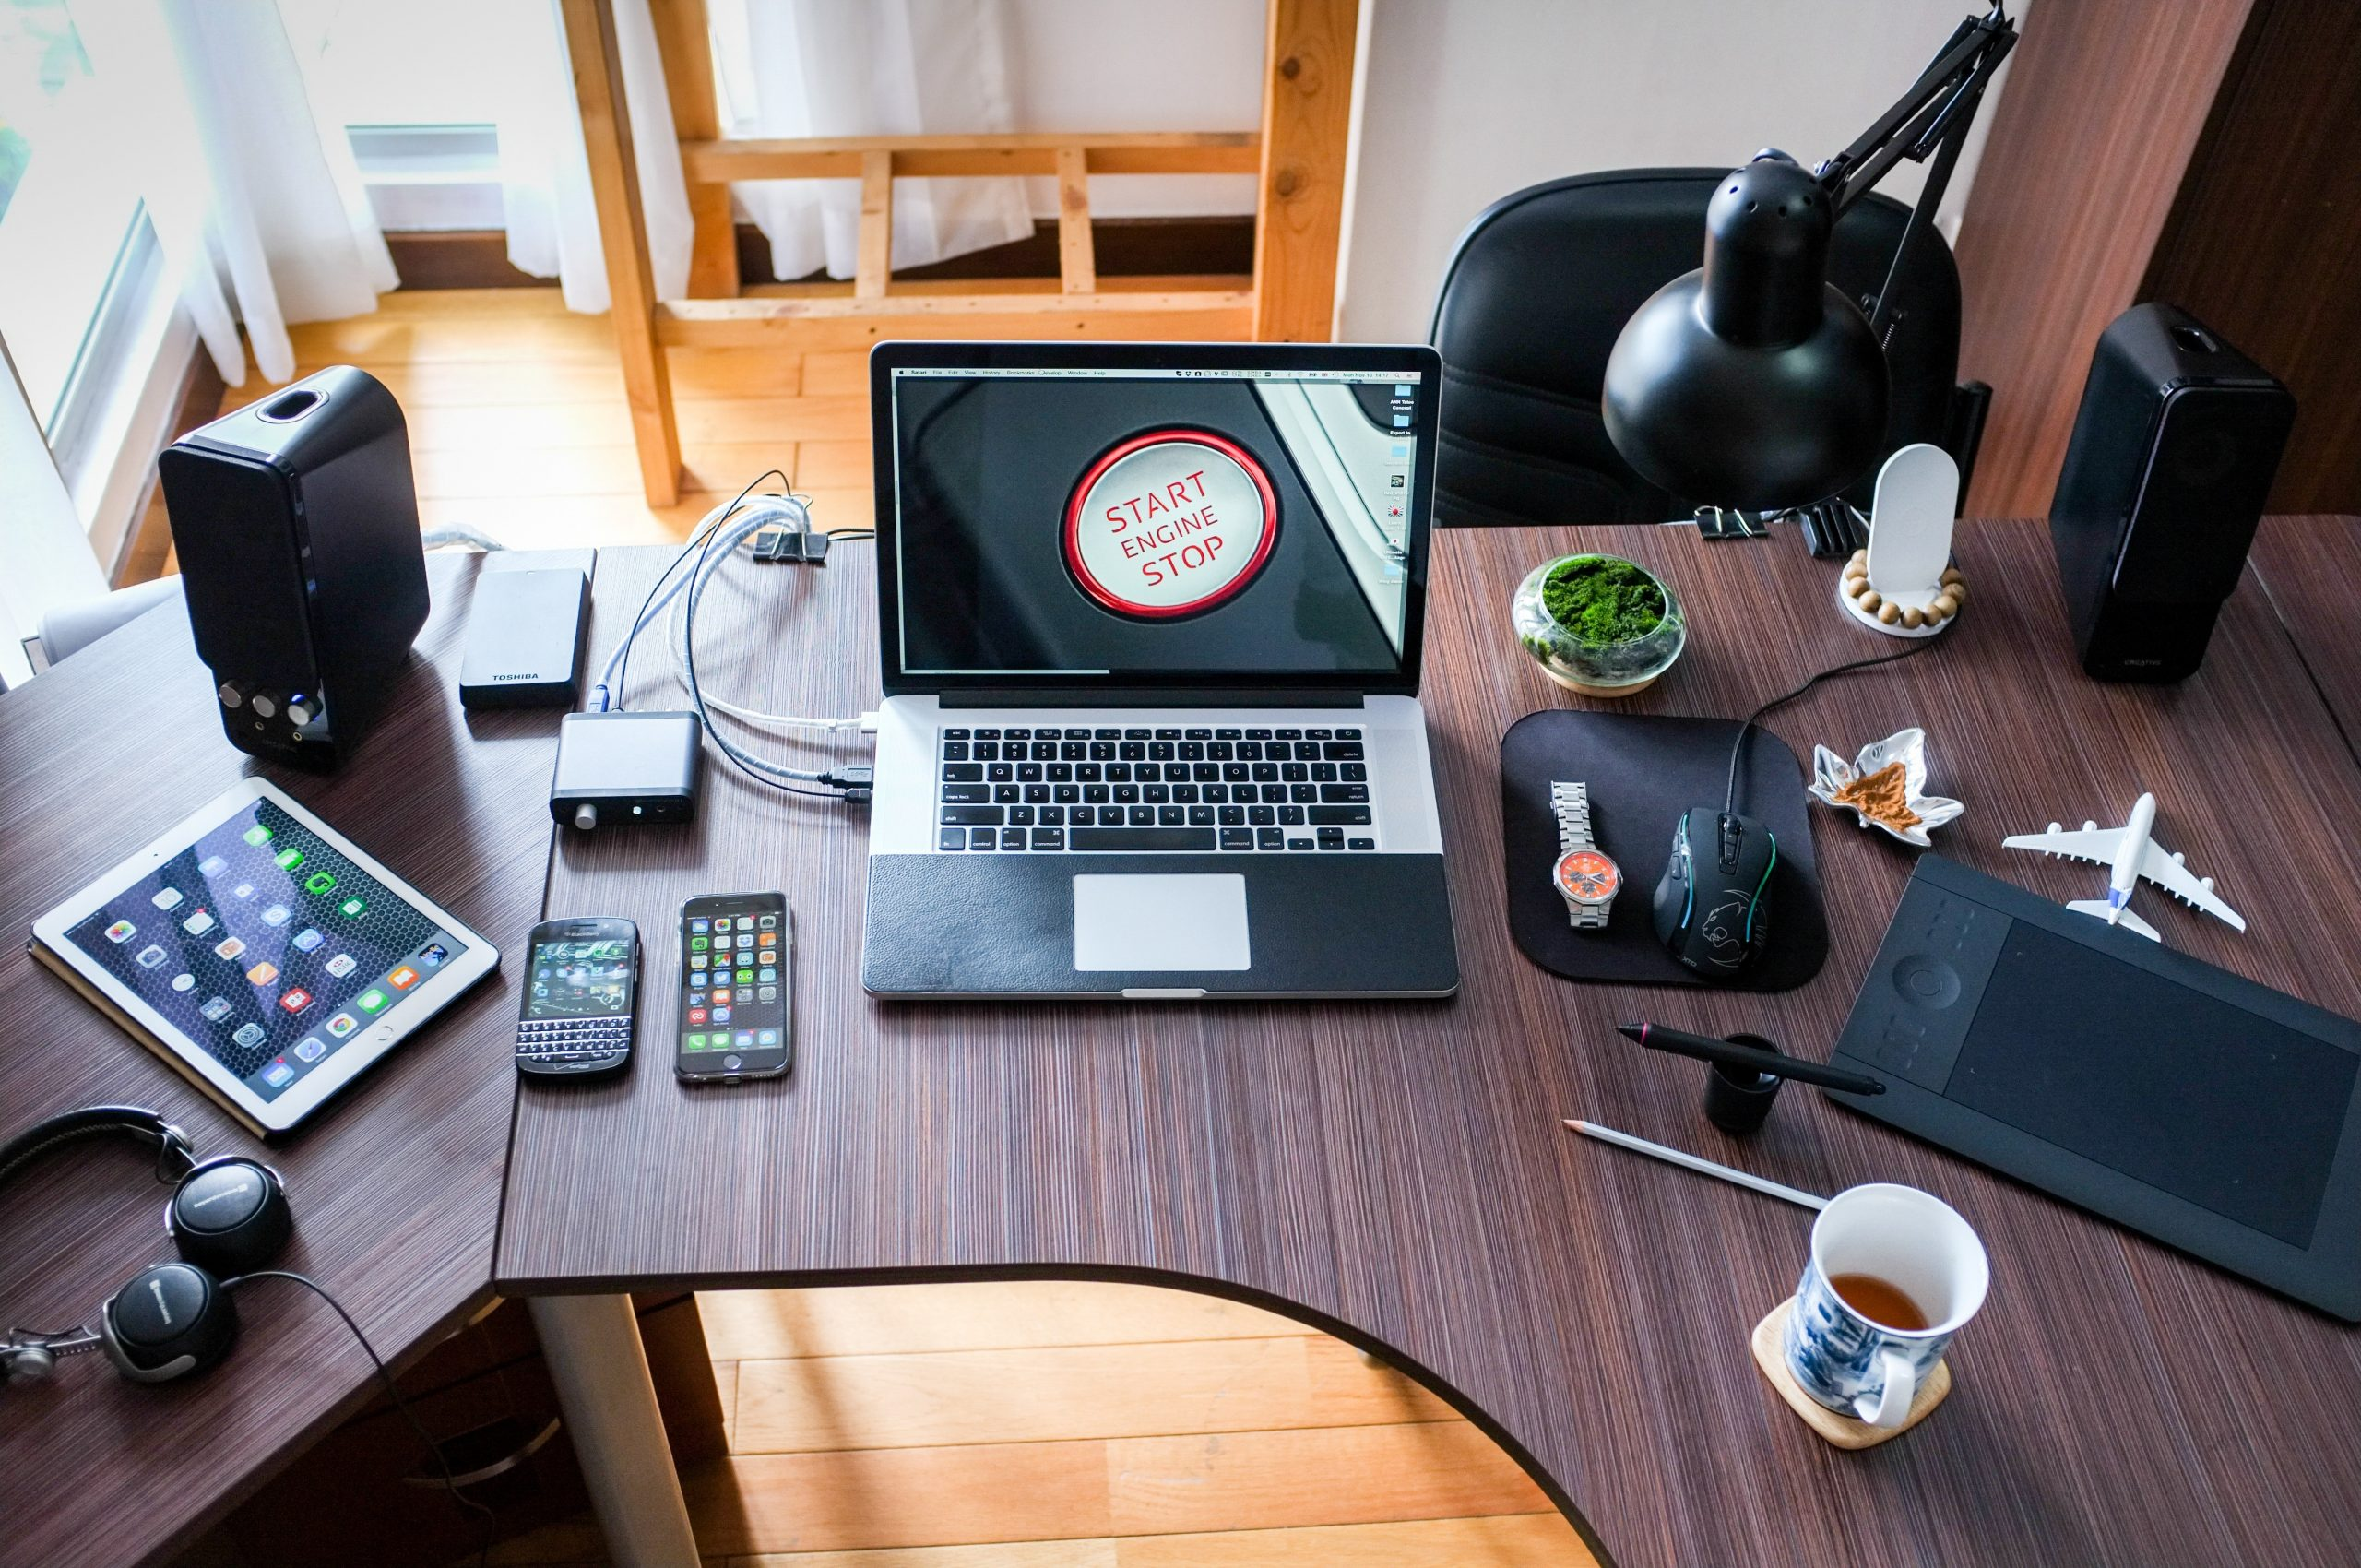 5 Ways to Help Workers Adjust to Working Remotely